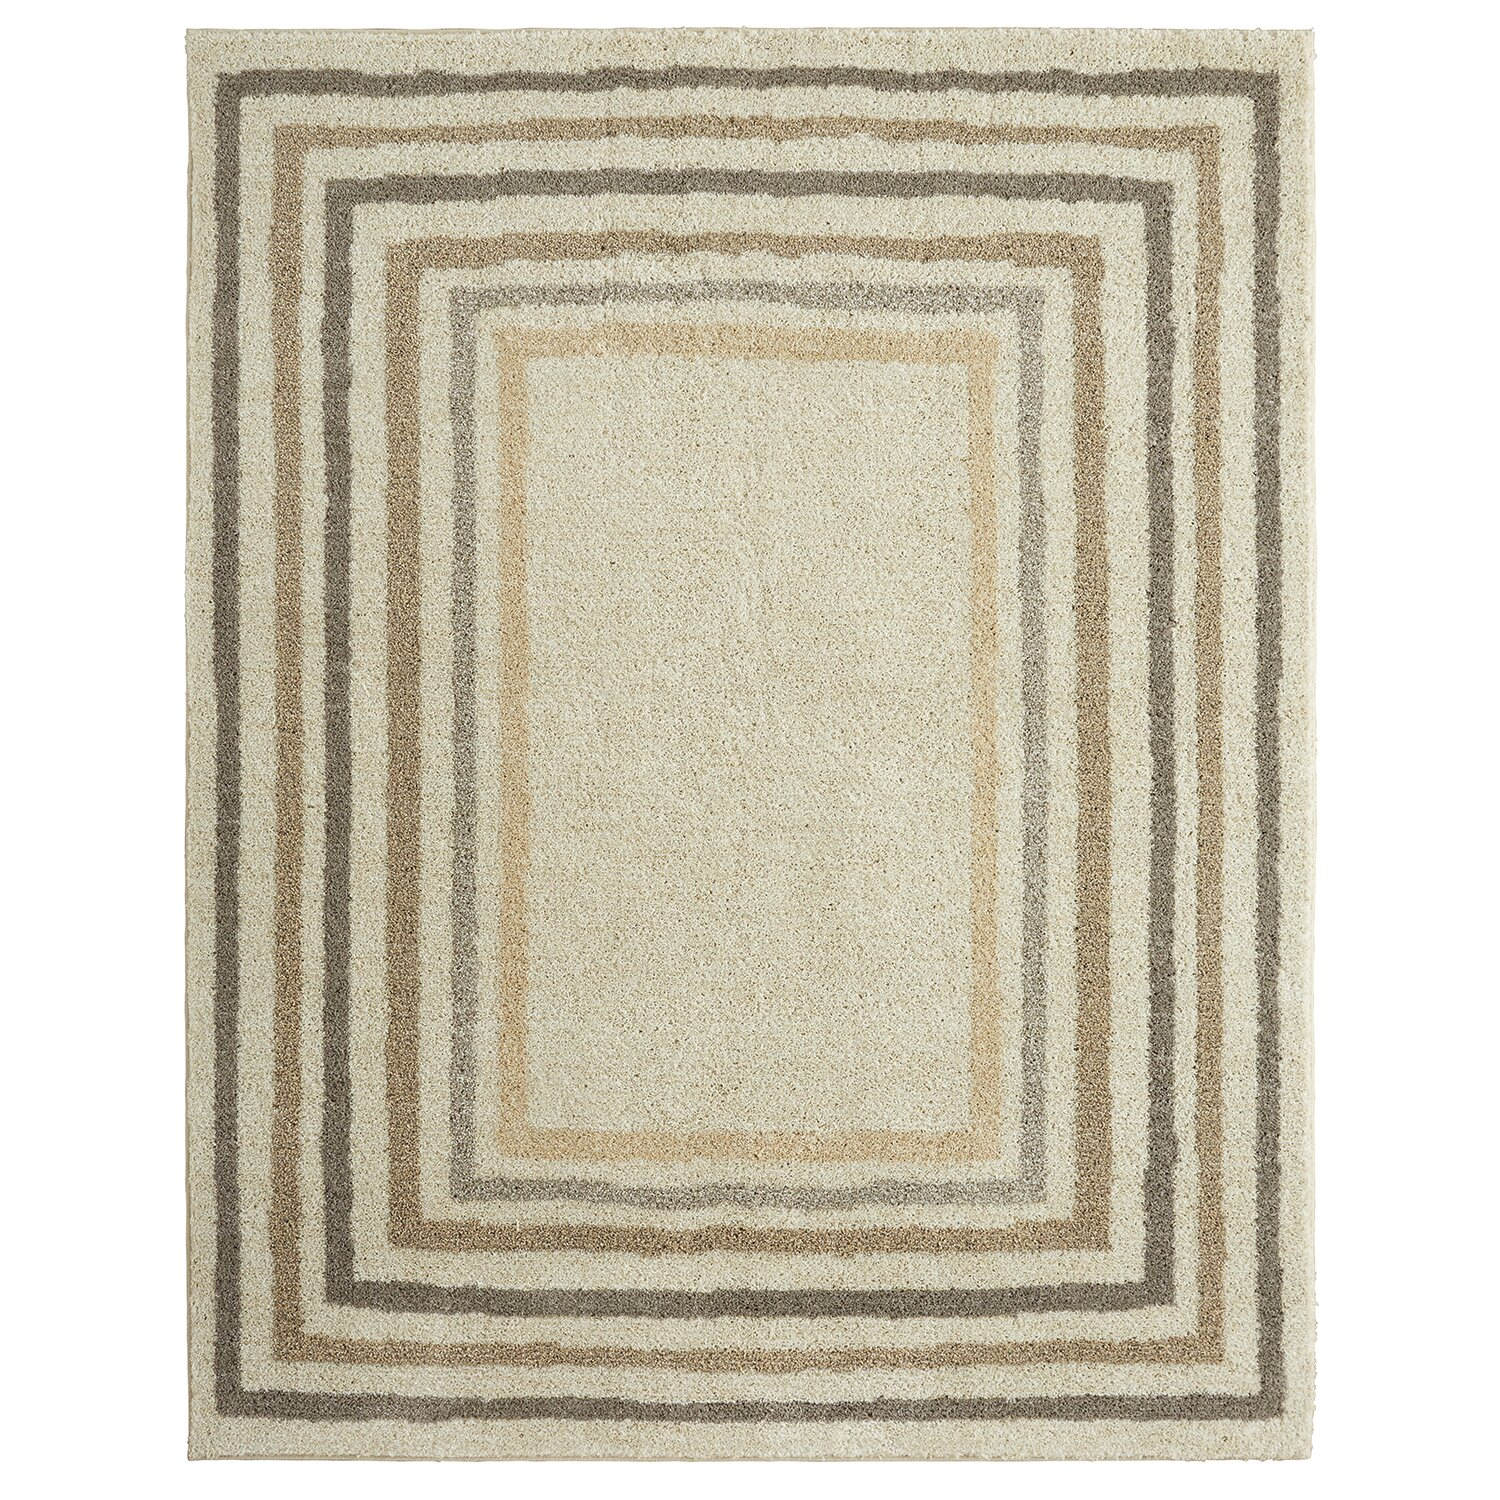 Charlton Home Bourne Sketched Border Beige Area Rug   Bder Beige